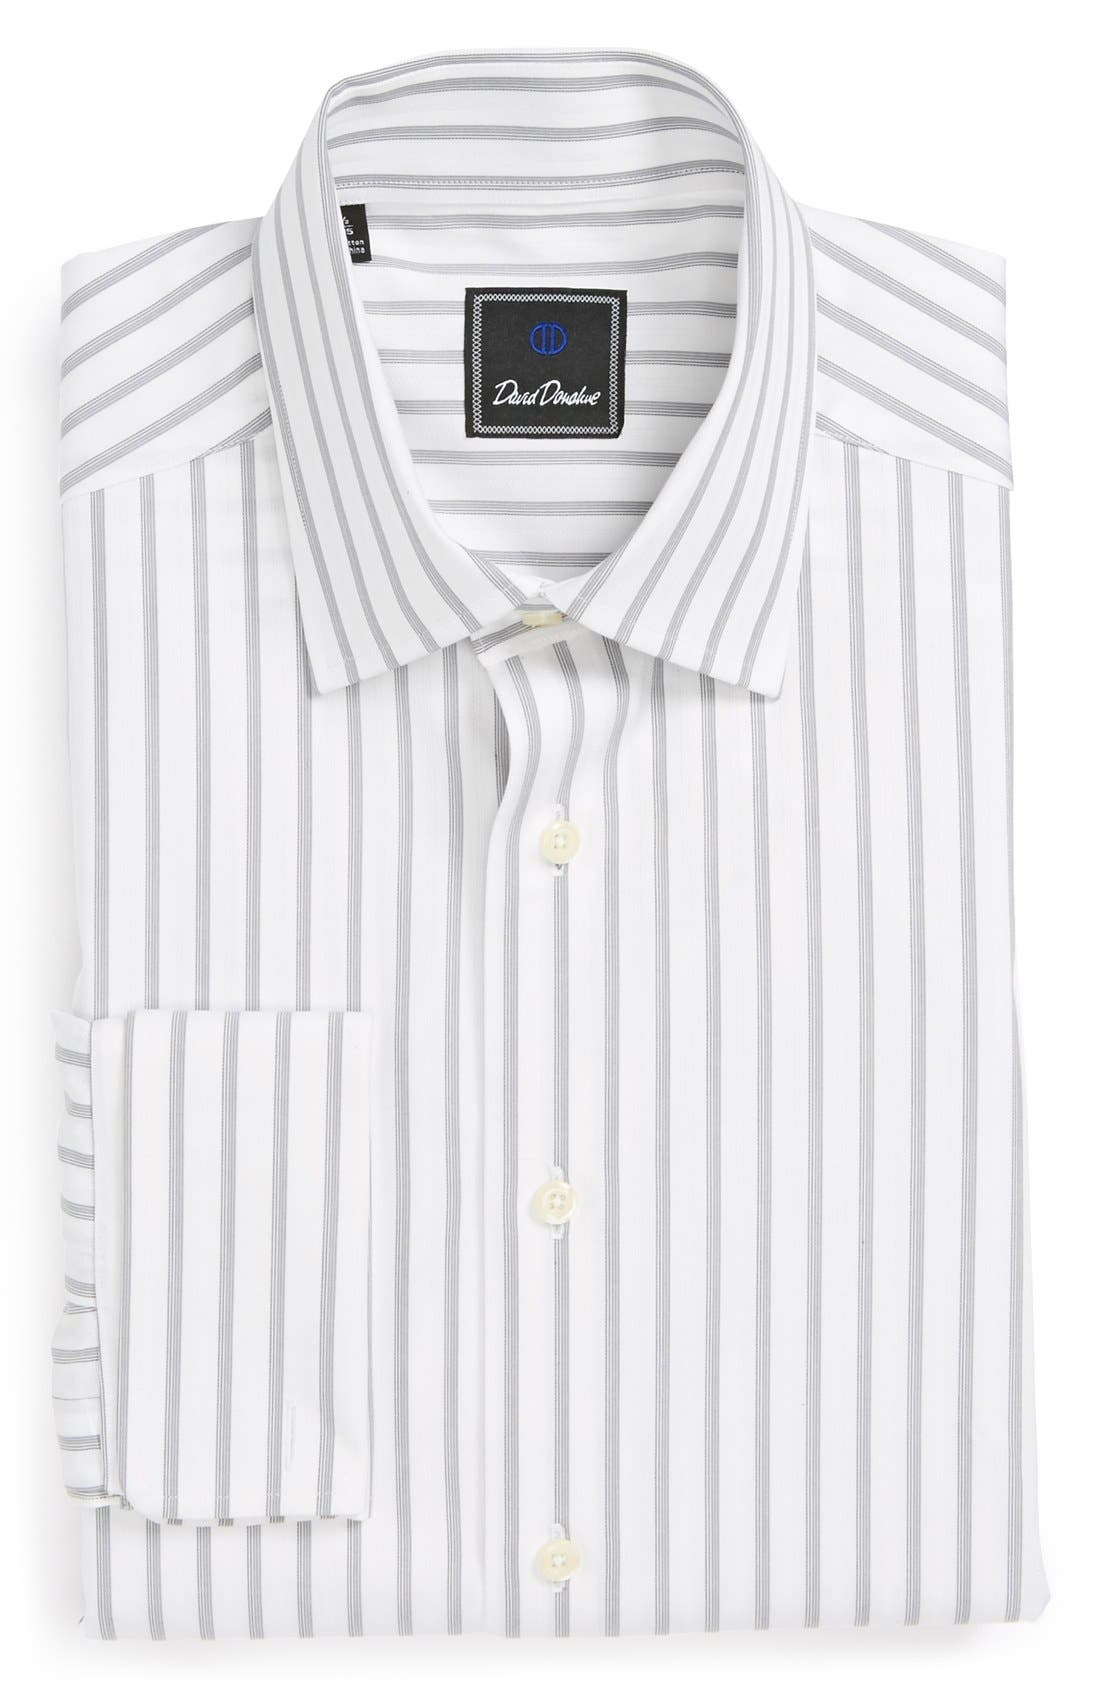 Alternate Image 1 Selected - David Donahue Regular Fit Stripe Dress Shirt